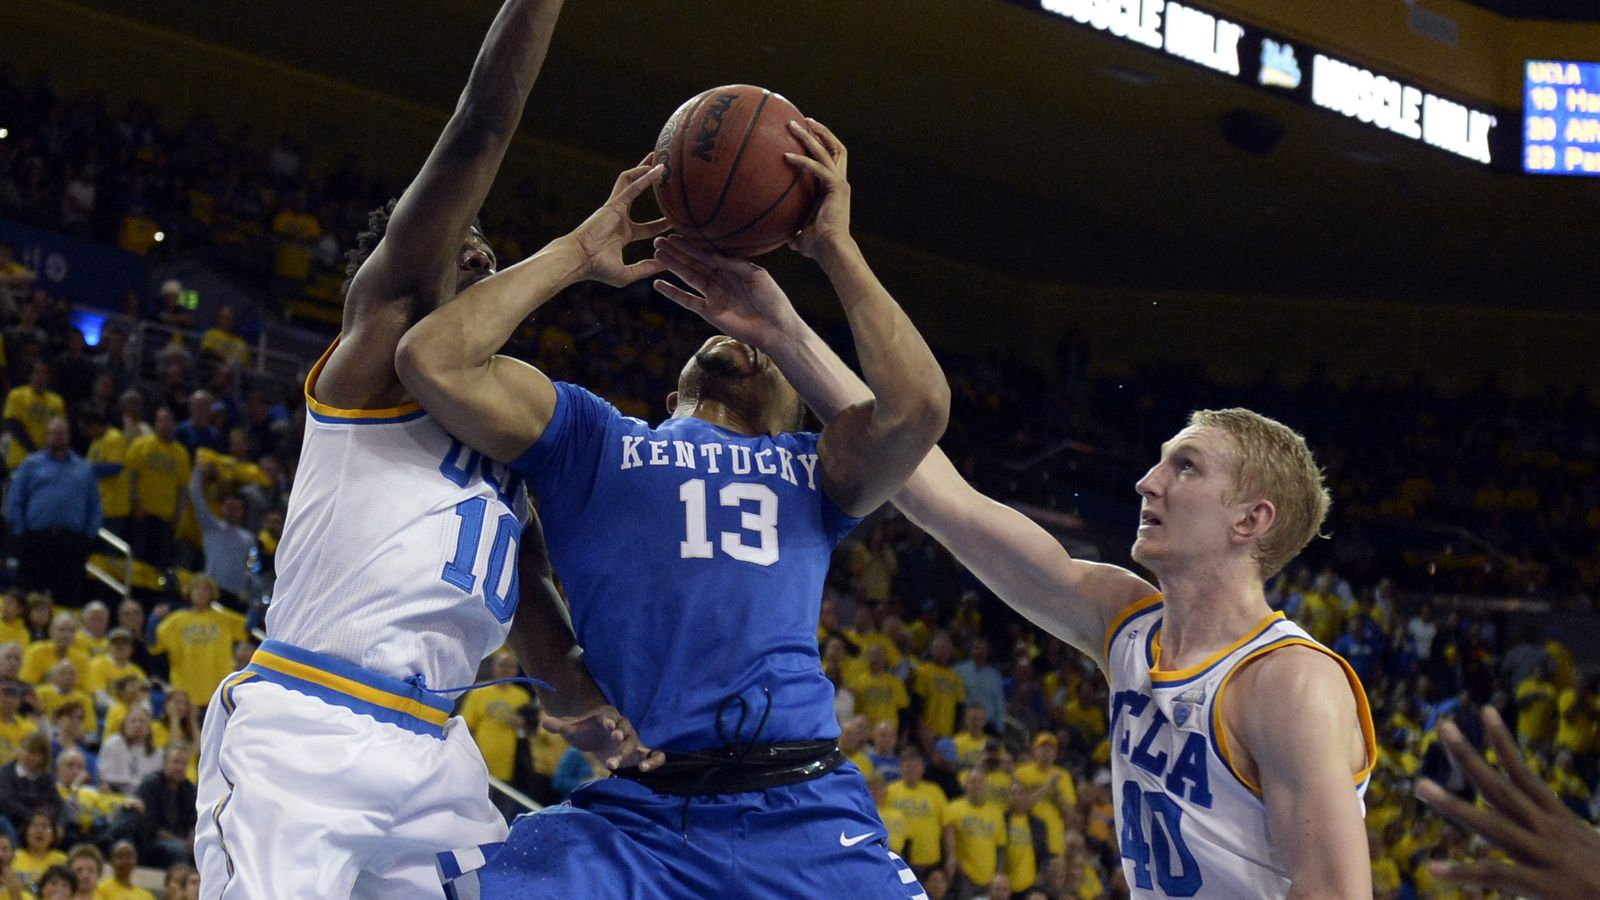 Uk Basketball: How To Watch #11 UCLA At #1 Kentucky: Game Time, TV, Radio